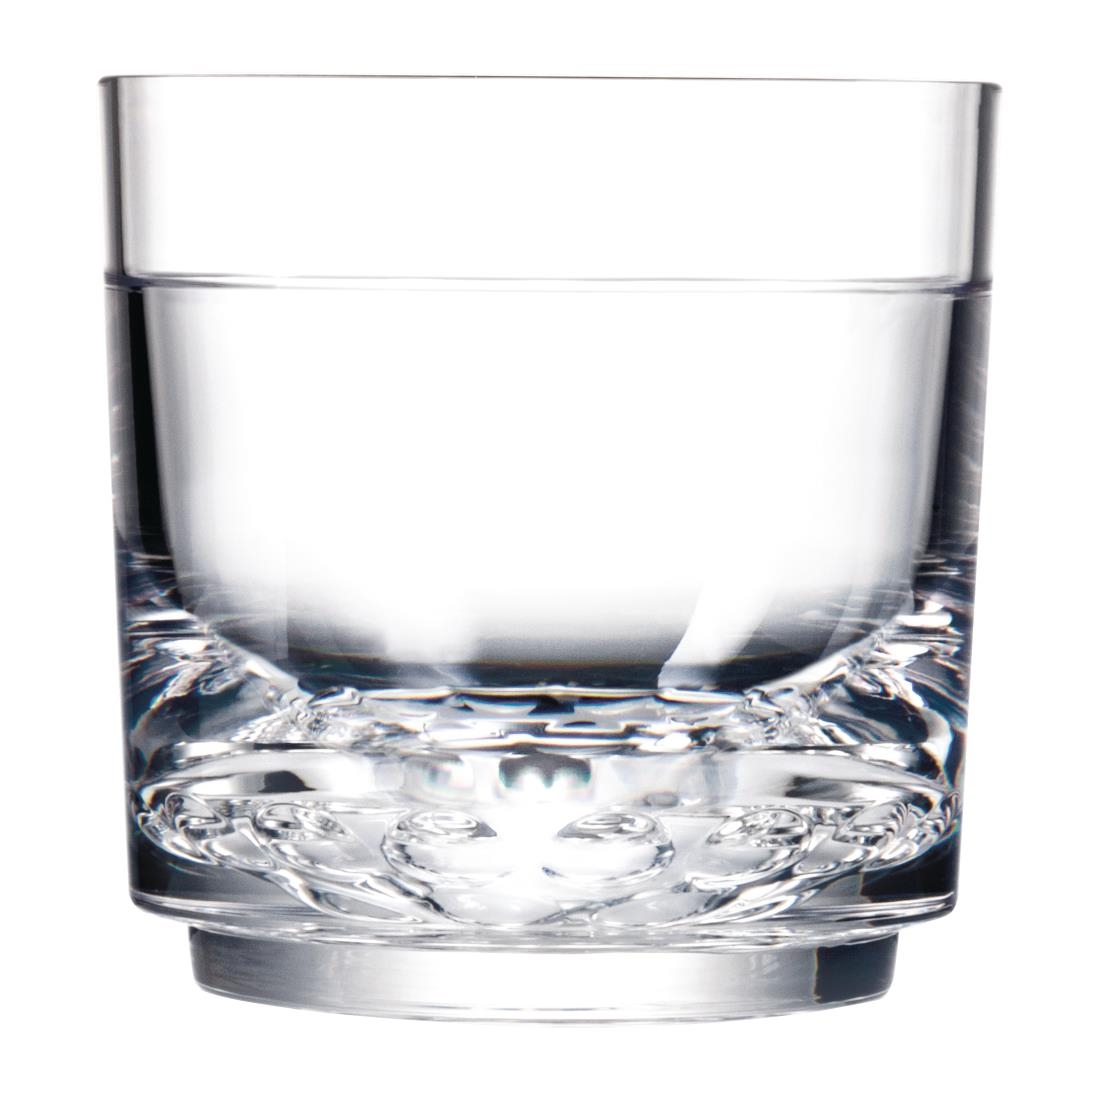 Image of Drinique Elite Tritan Rocks Tumblers Clear 285ml (Pack of 24) Pack of 24